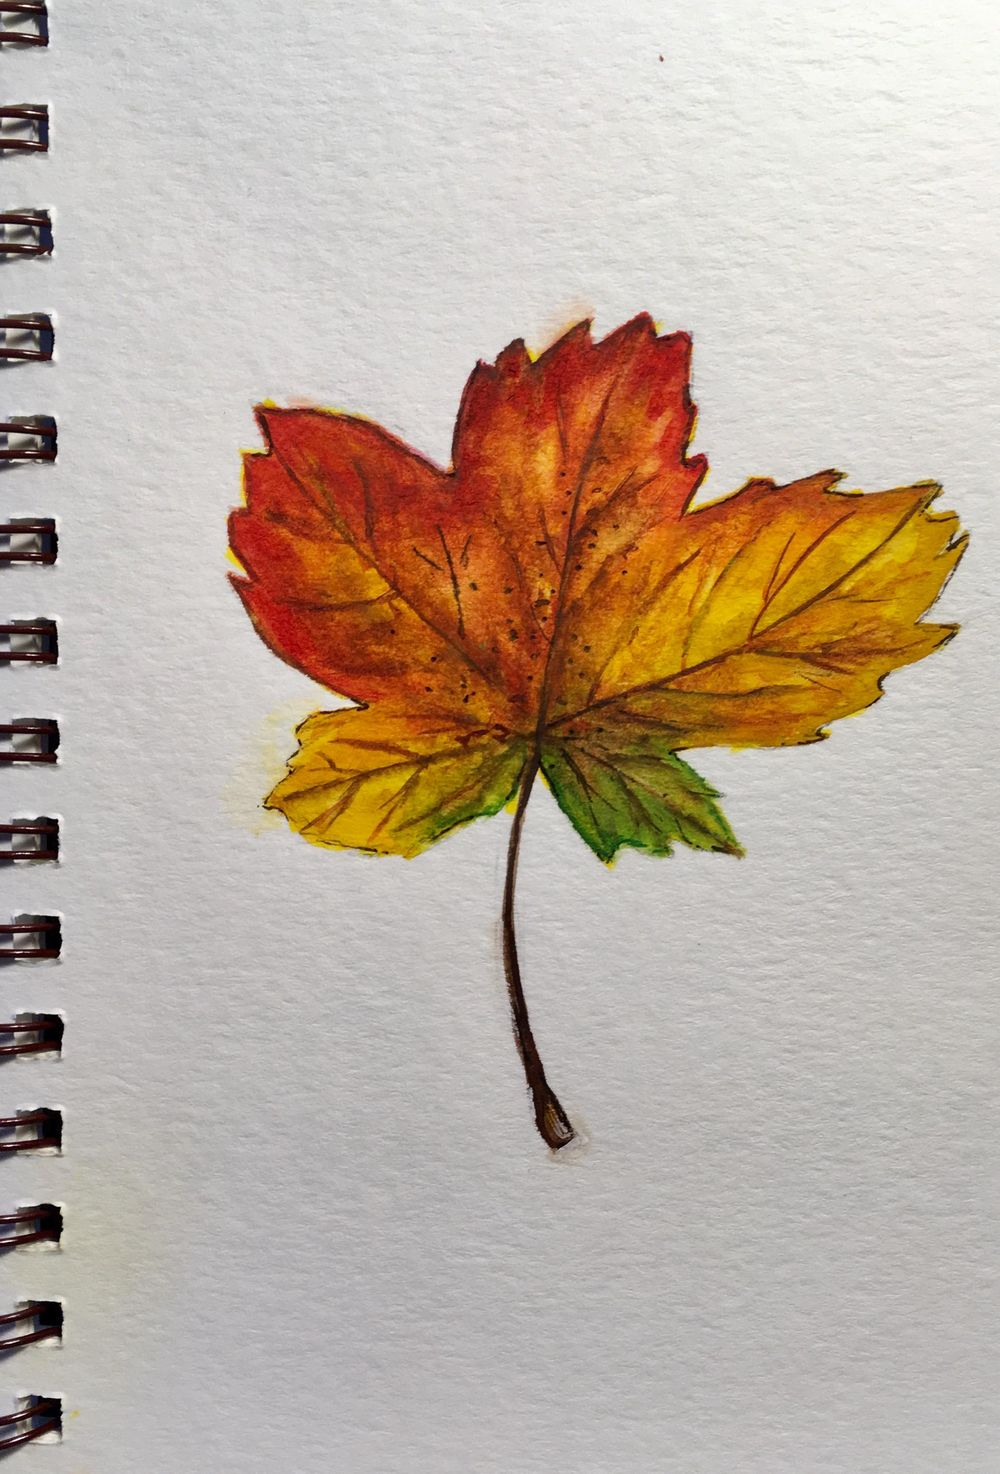 Autumn Leafs and Branches - image 4 - student project